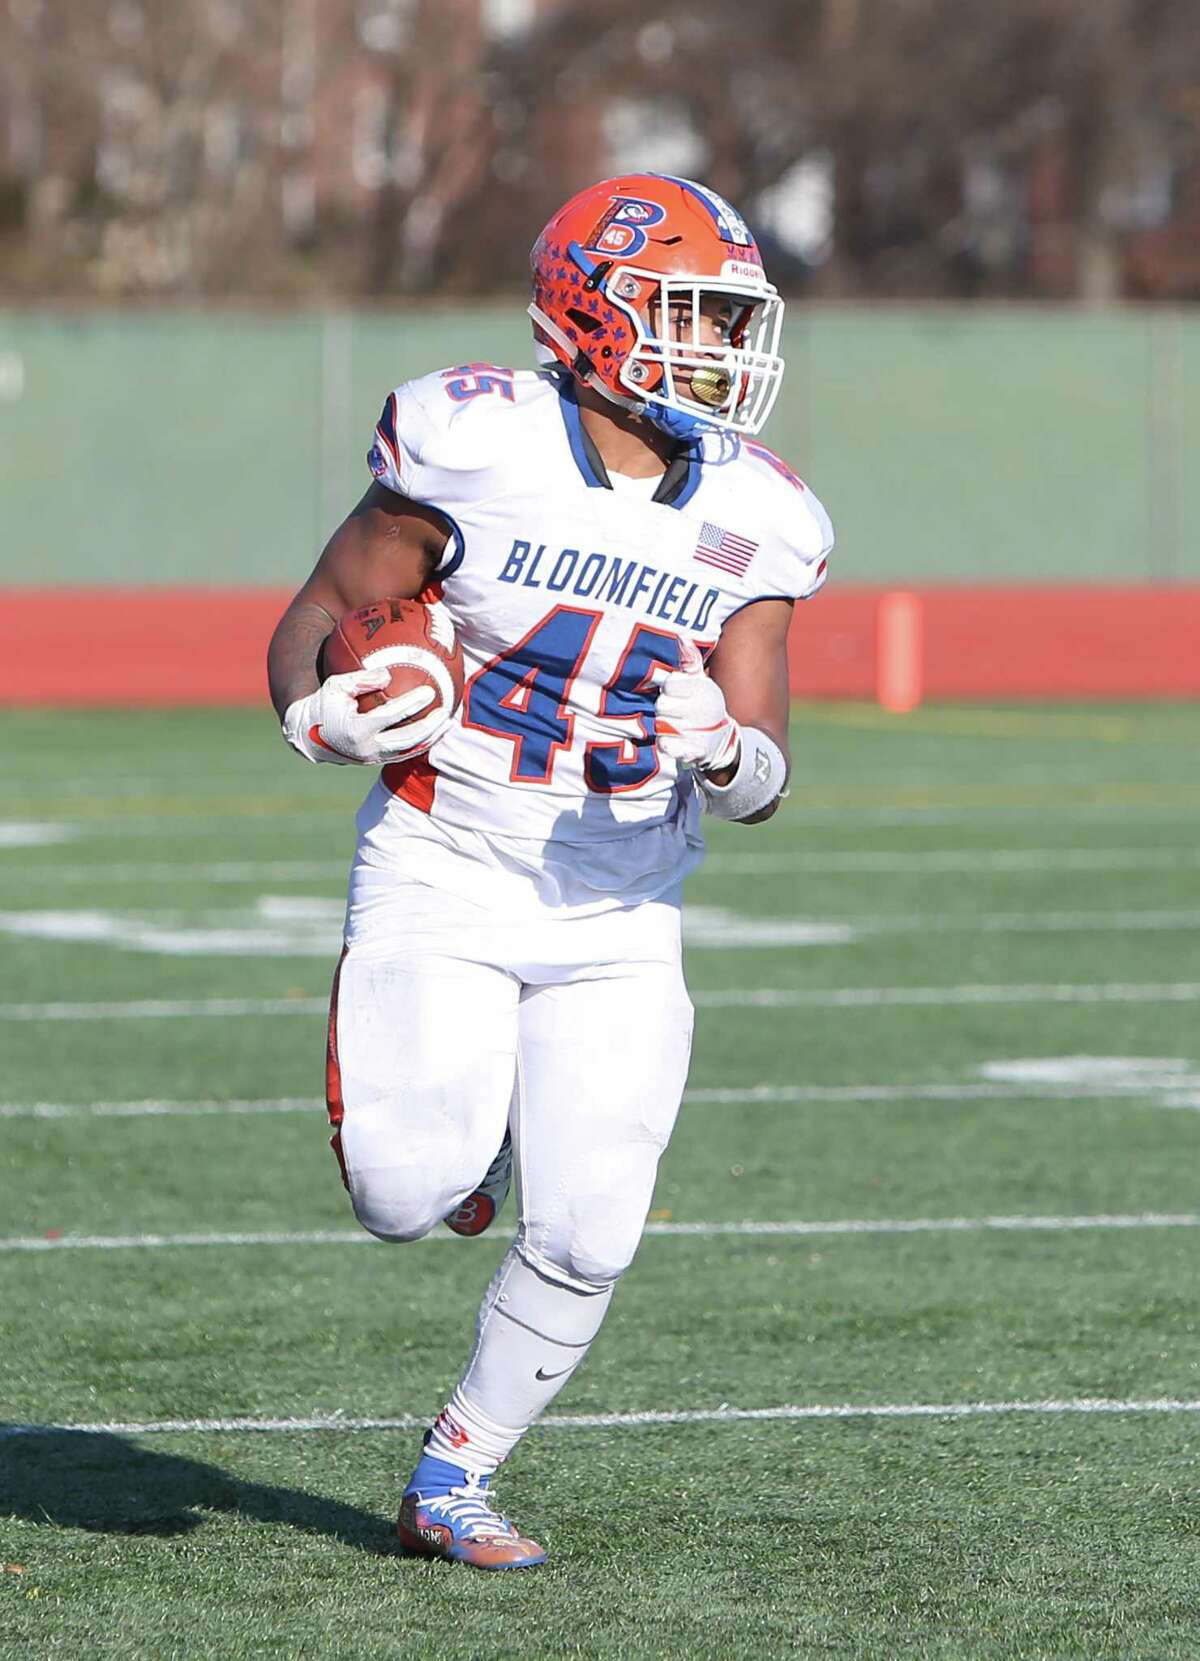 Bloomfield High School?'s Ky?'Juon Butler runs the ball up the field during the Class S Championship Game in New Britain against Haddam-Killingworth High School on Saturday, Dec. 8, 2018.